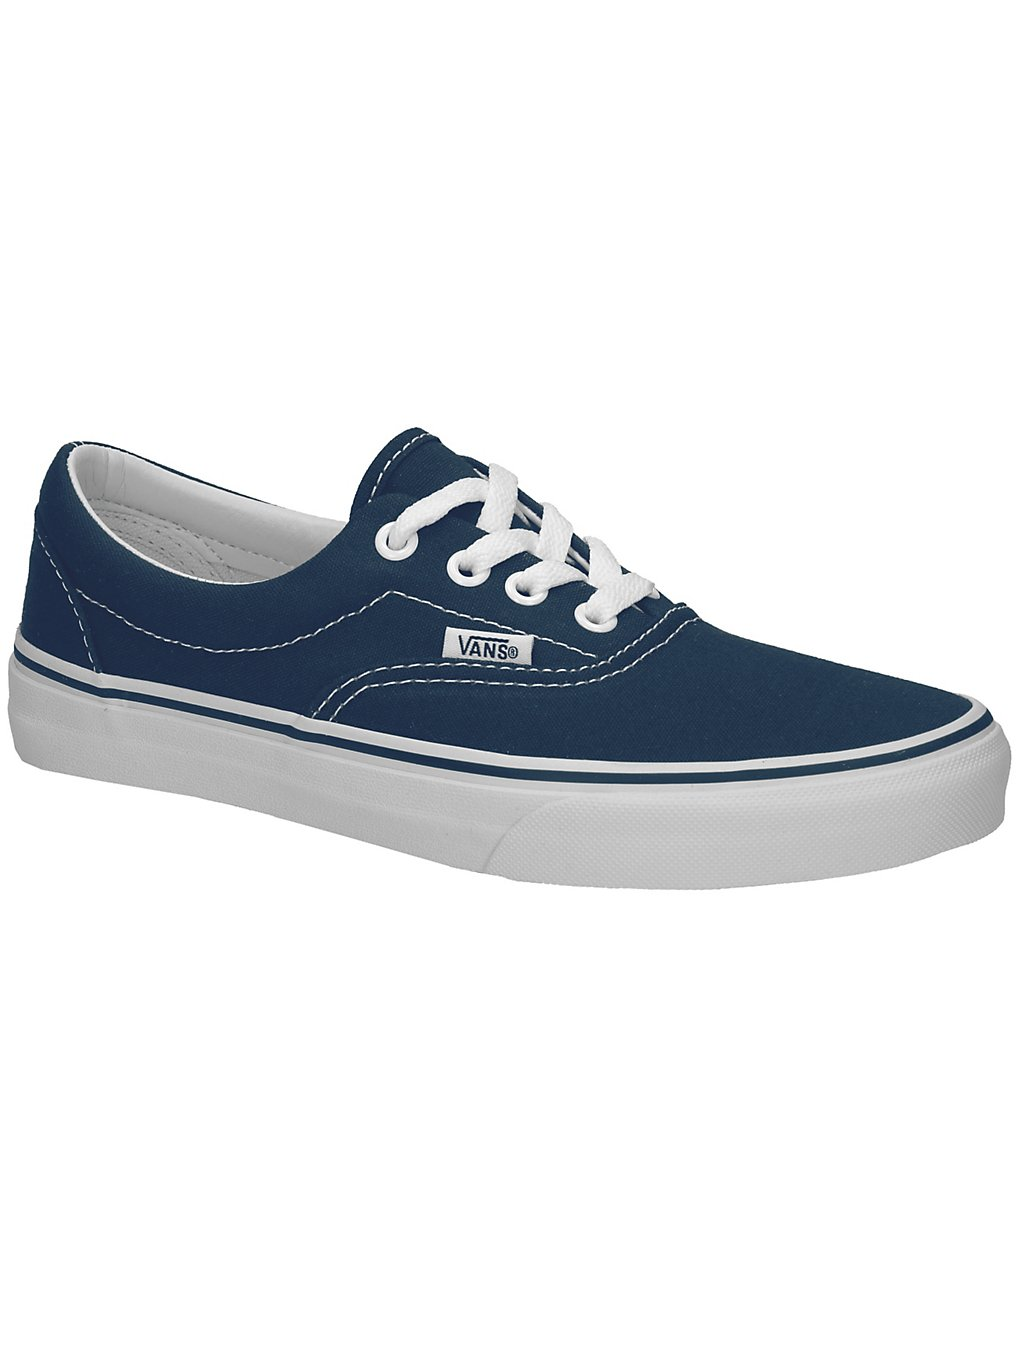 Vans Era Sneakers navy Gr. 4.0 US